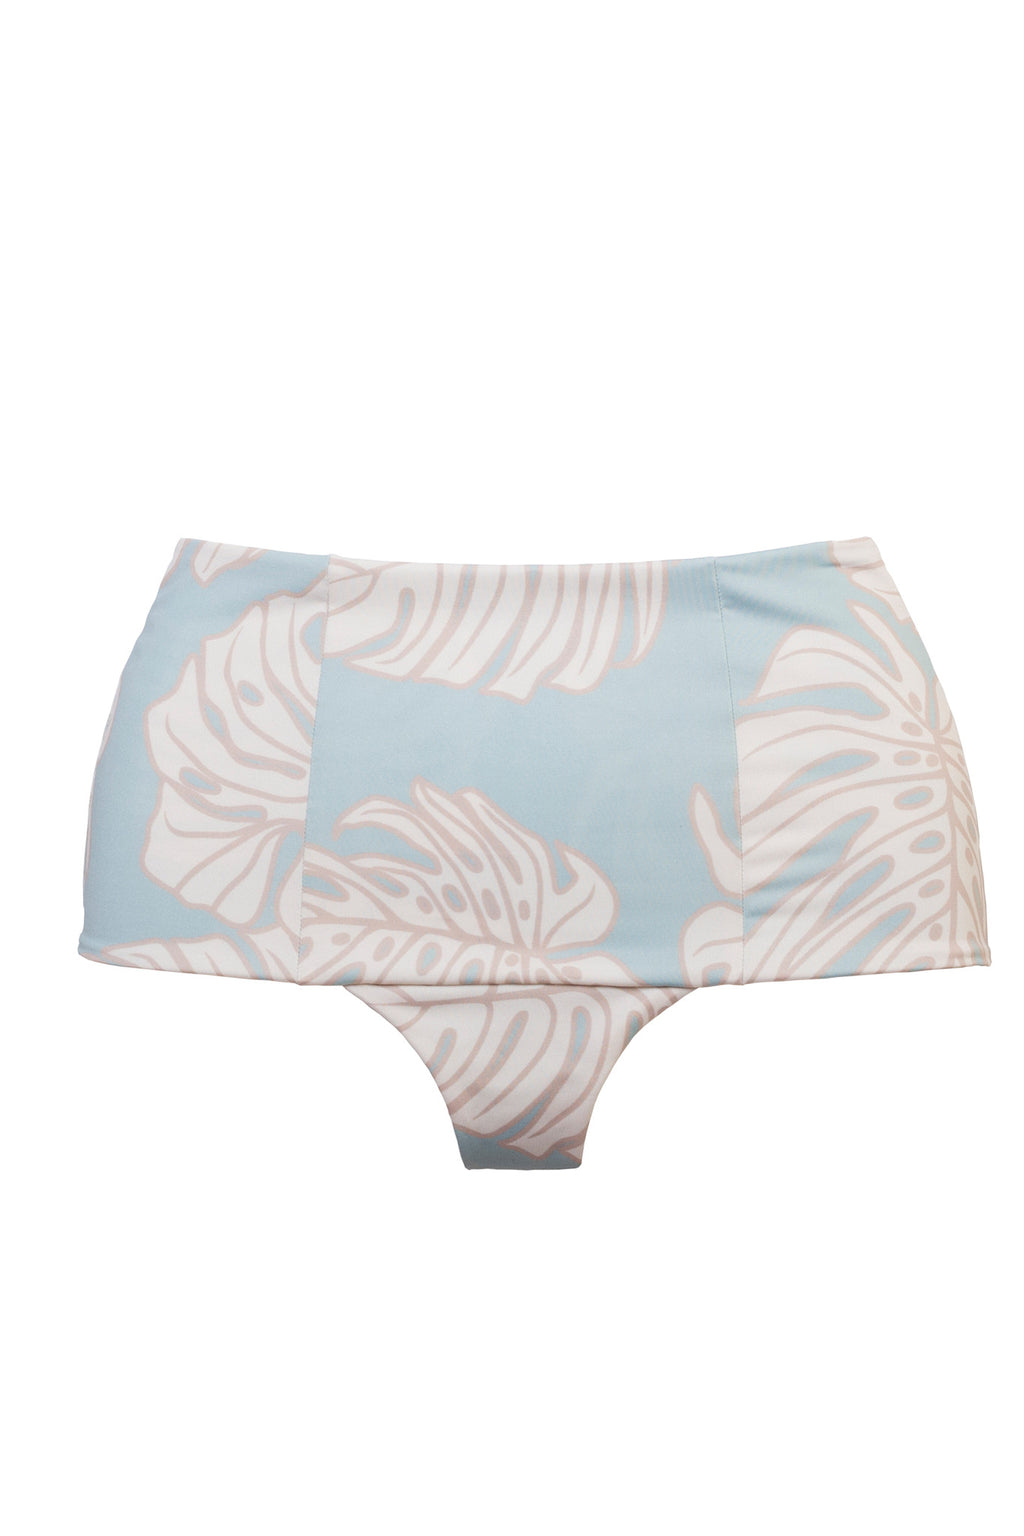 Aqua Leaf Retro Short (last one)